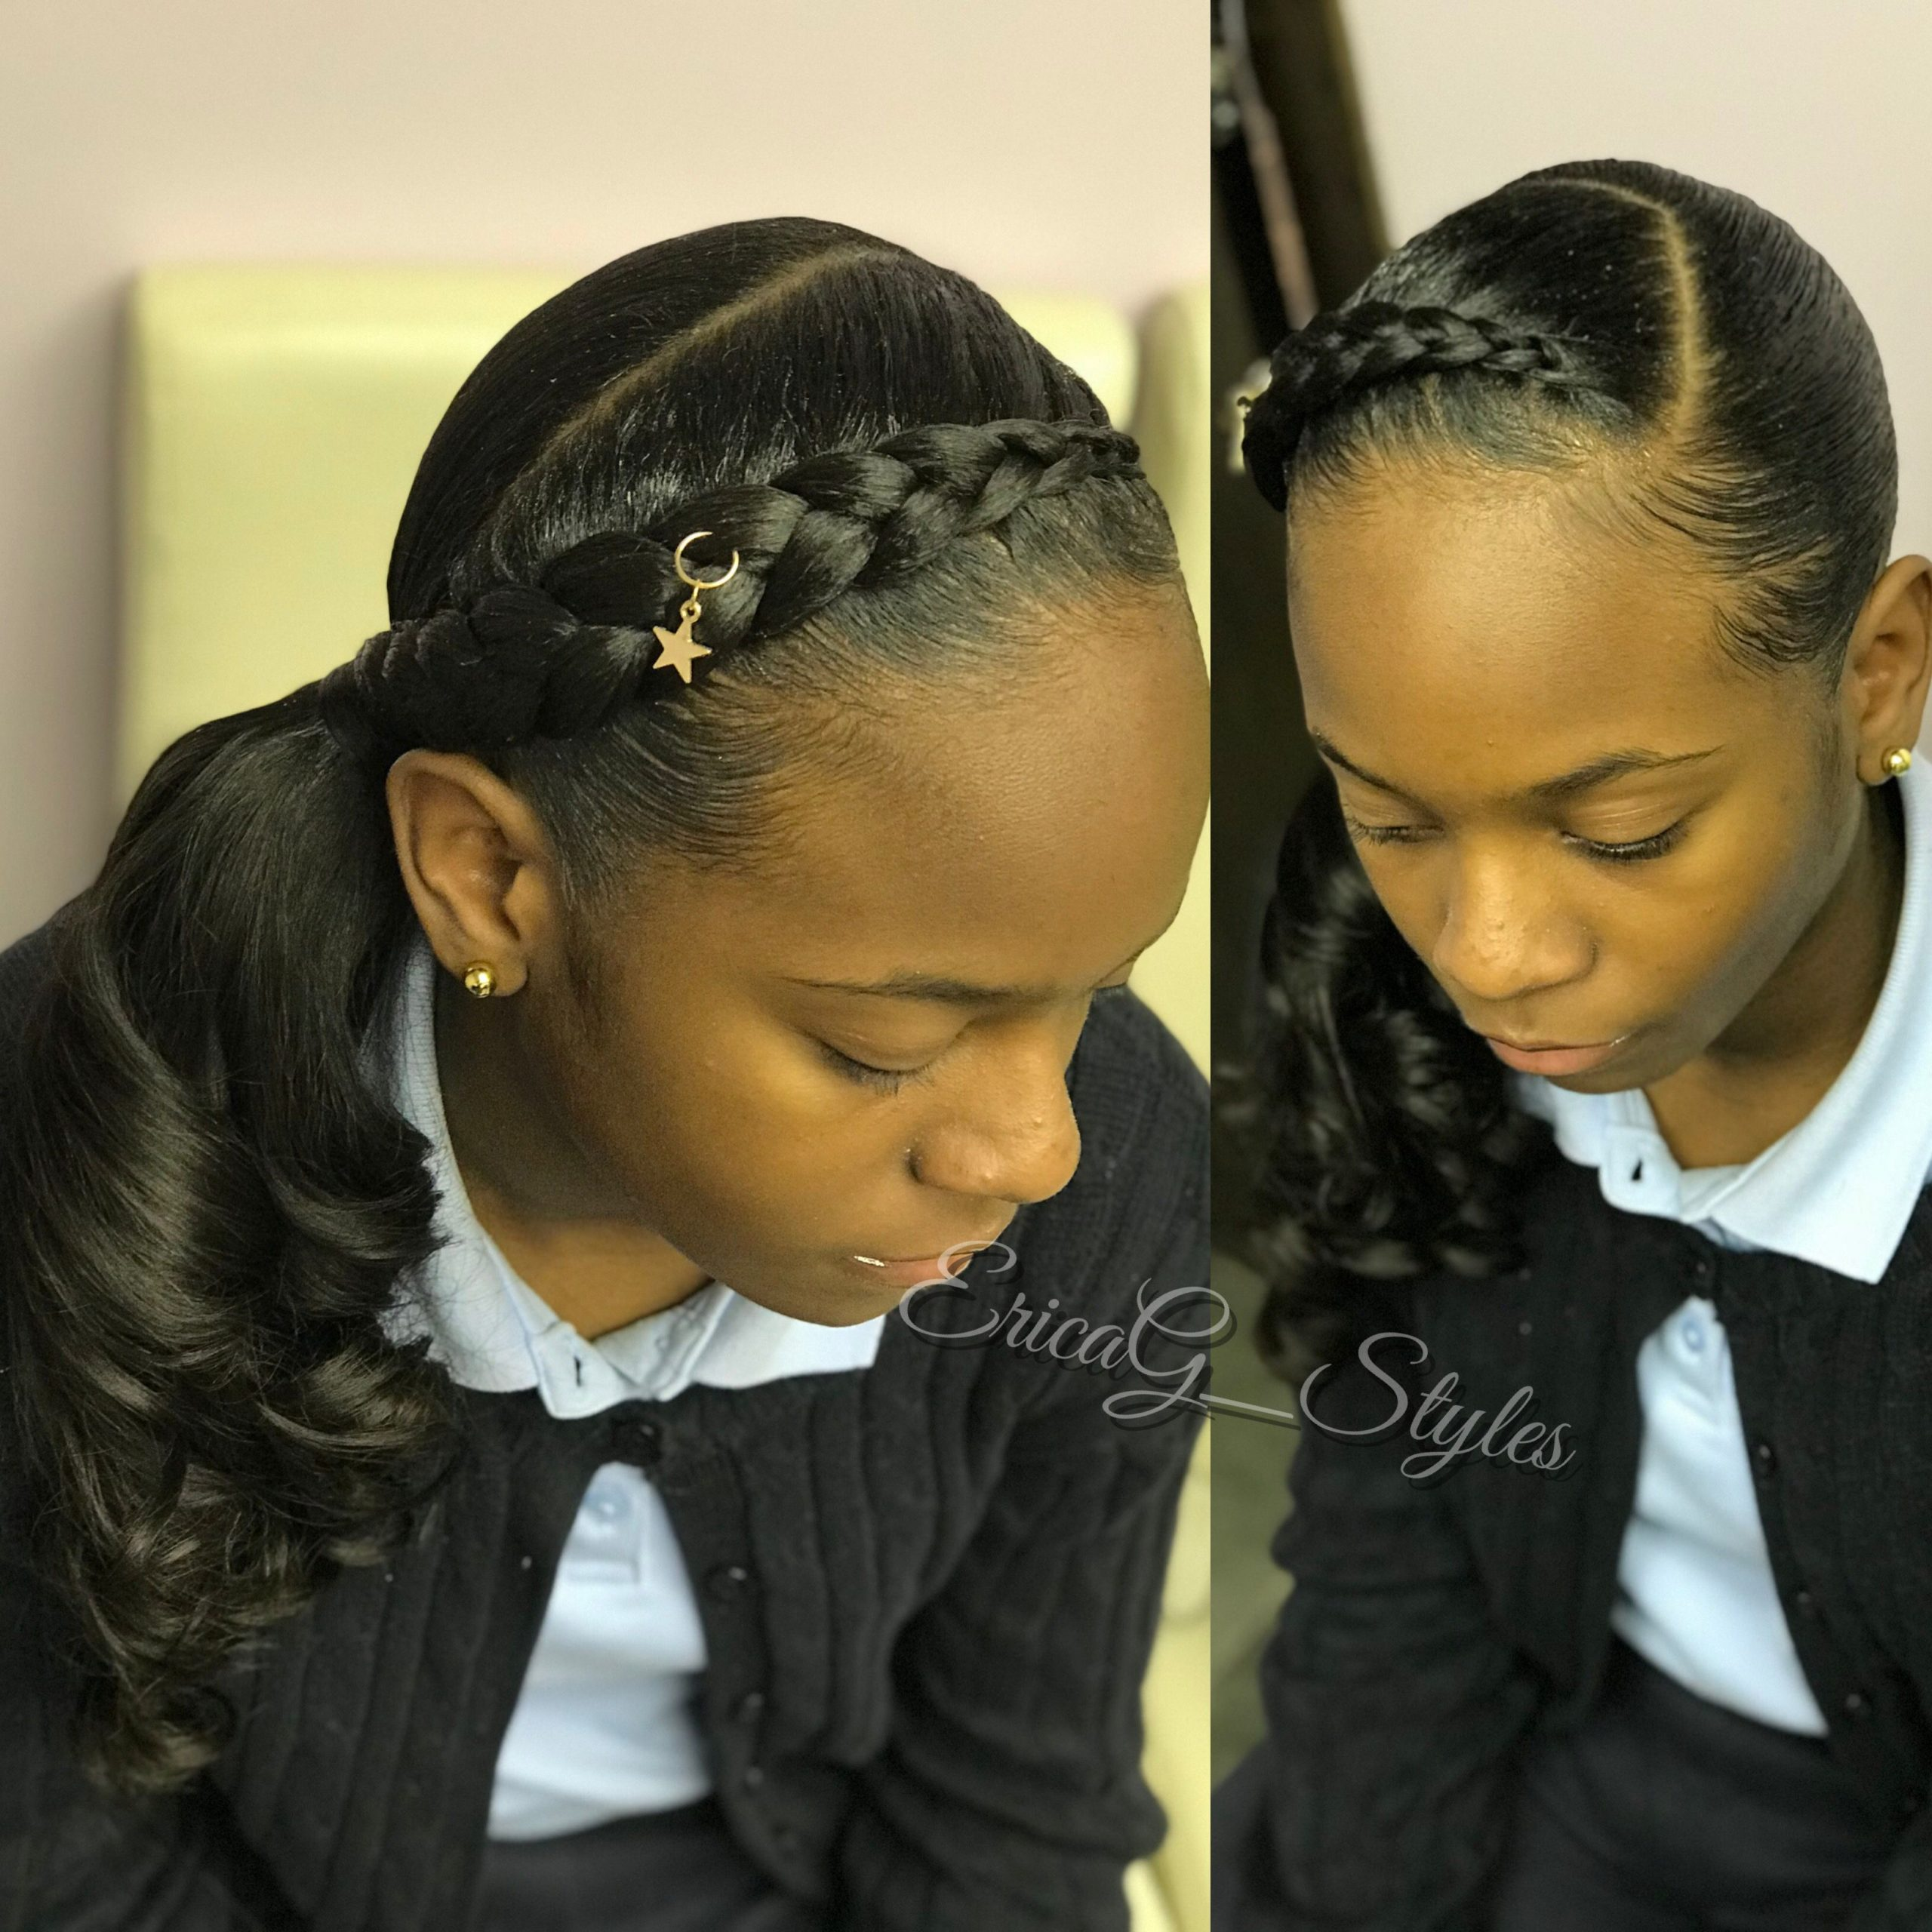 Trendy Little Black Girl Hair Bradiging Styles for School Days